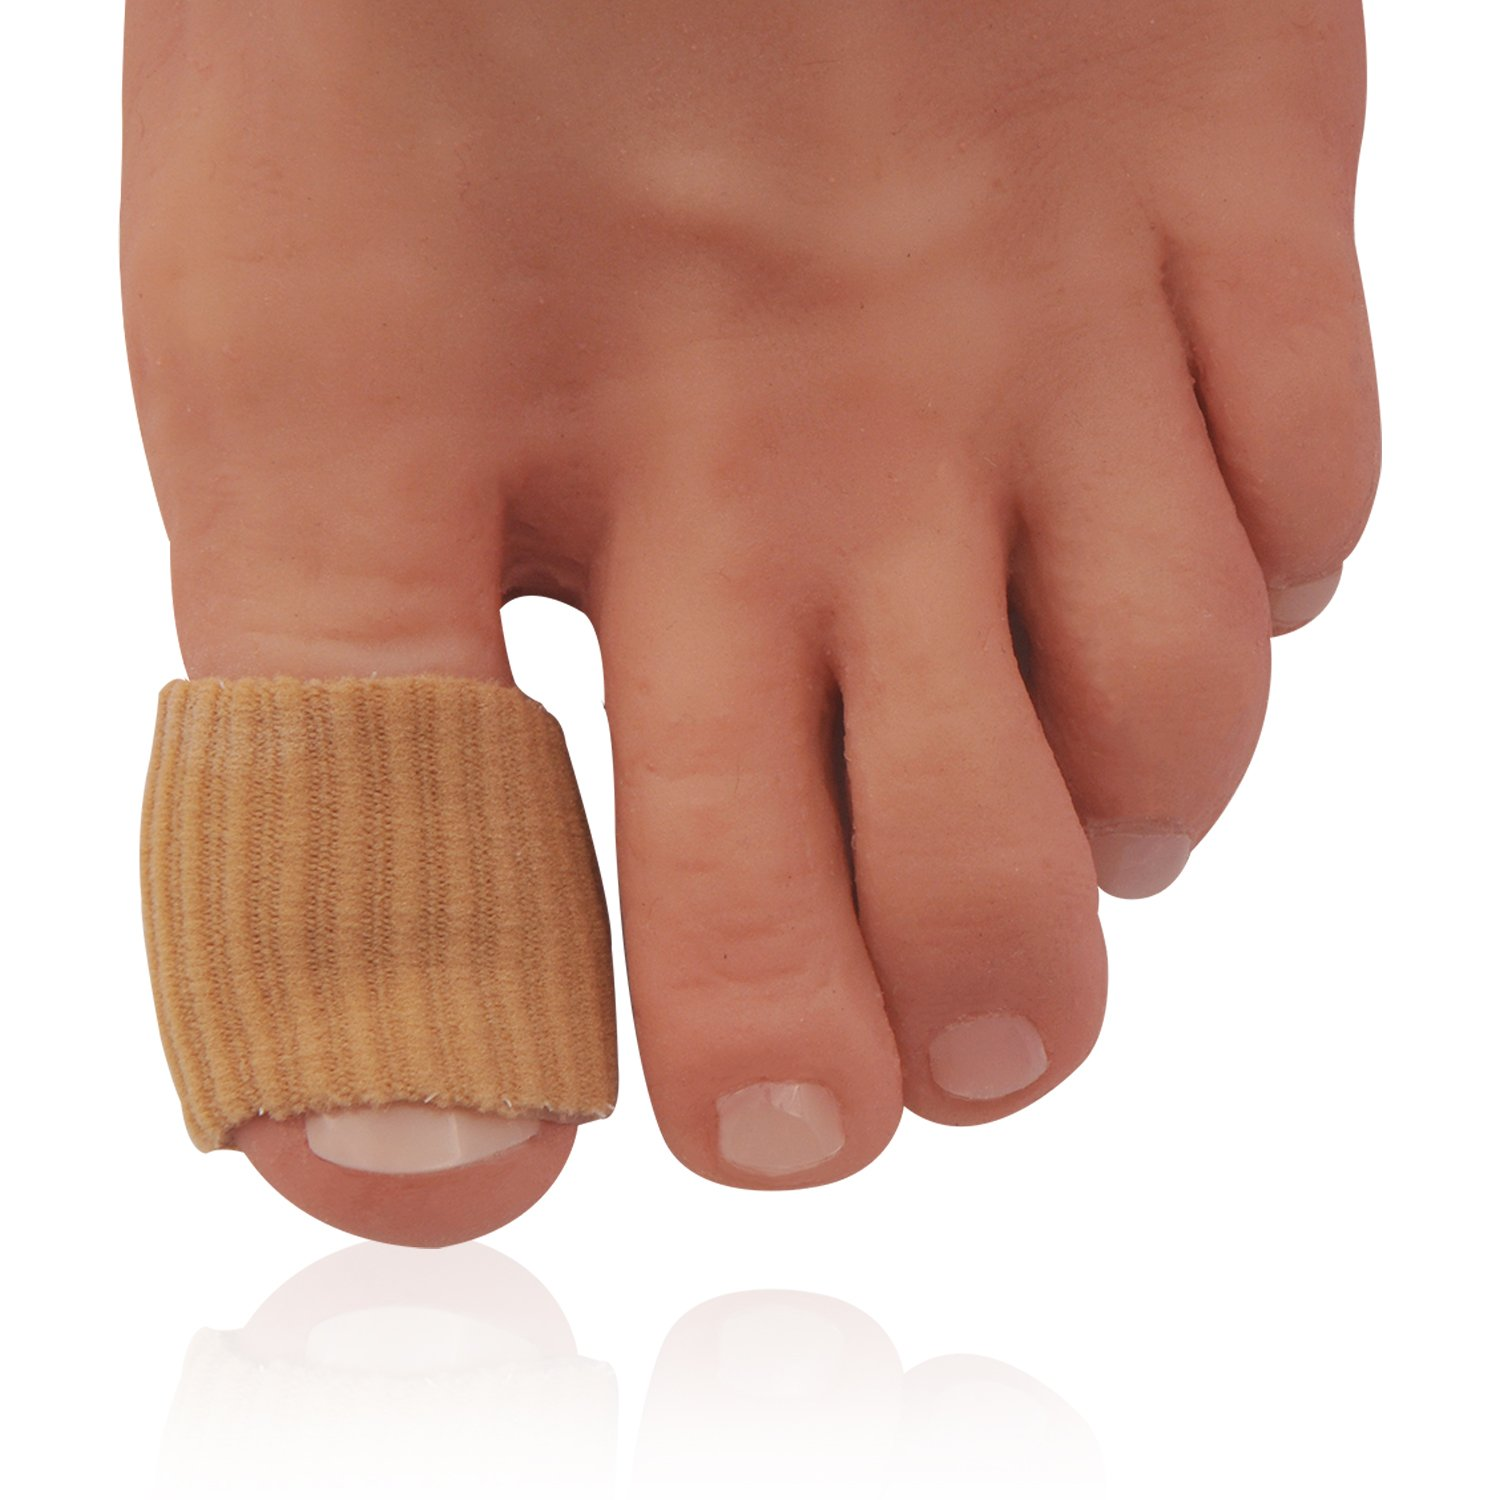 Dr Frederick's Original Fabrigrip Toe Protectors - 2 Multiple-Use Pieces - Toe Covers to Prevent Blisters, Cushion Bunions, More - Large